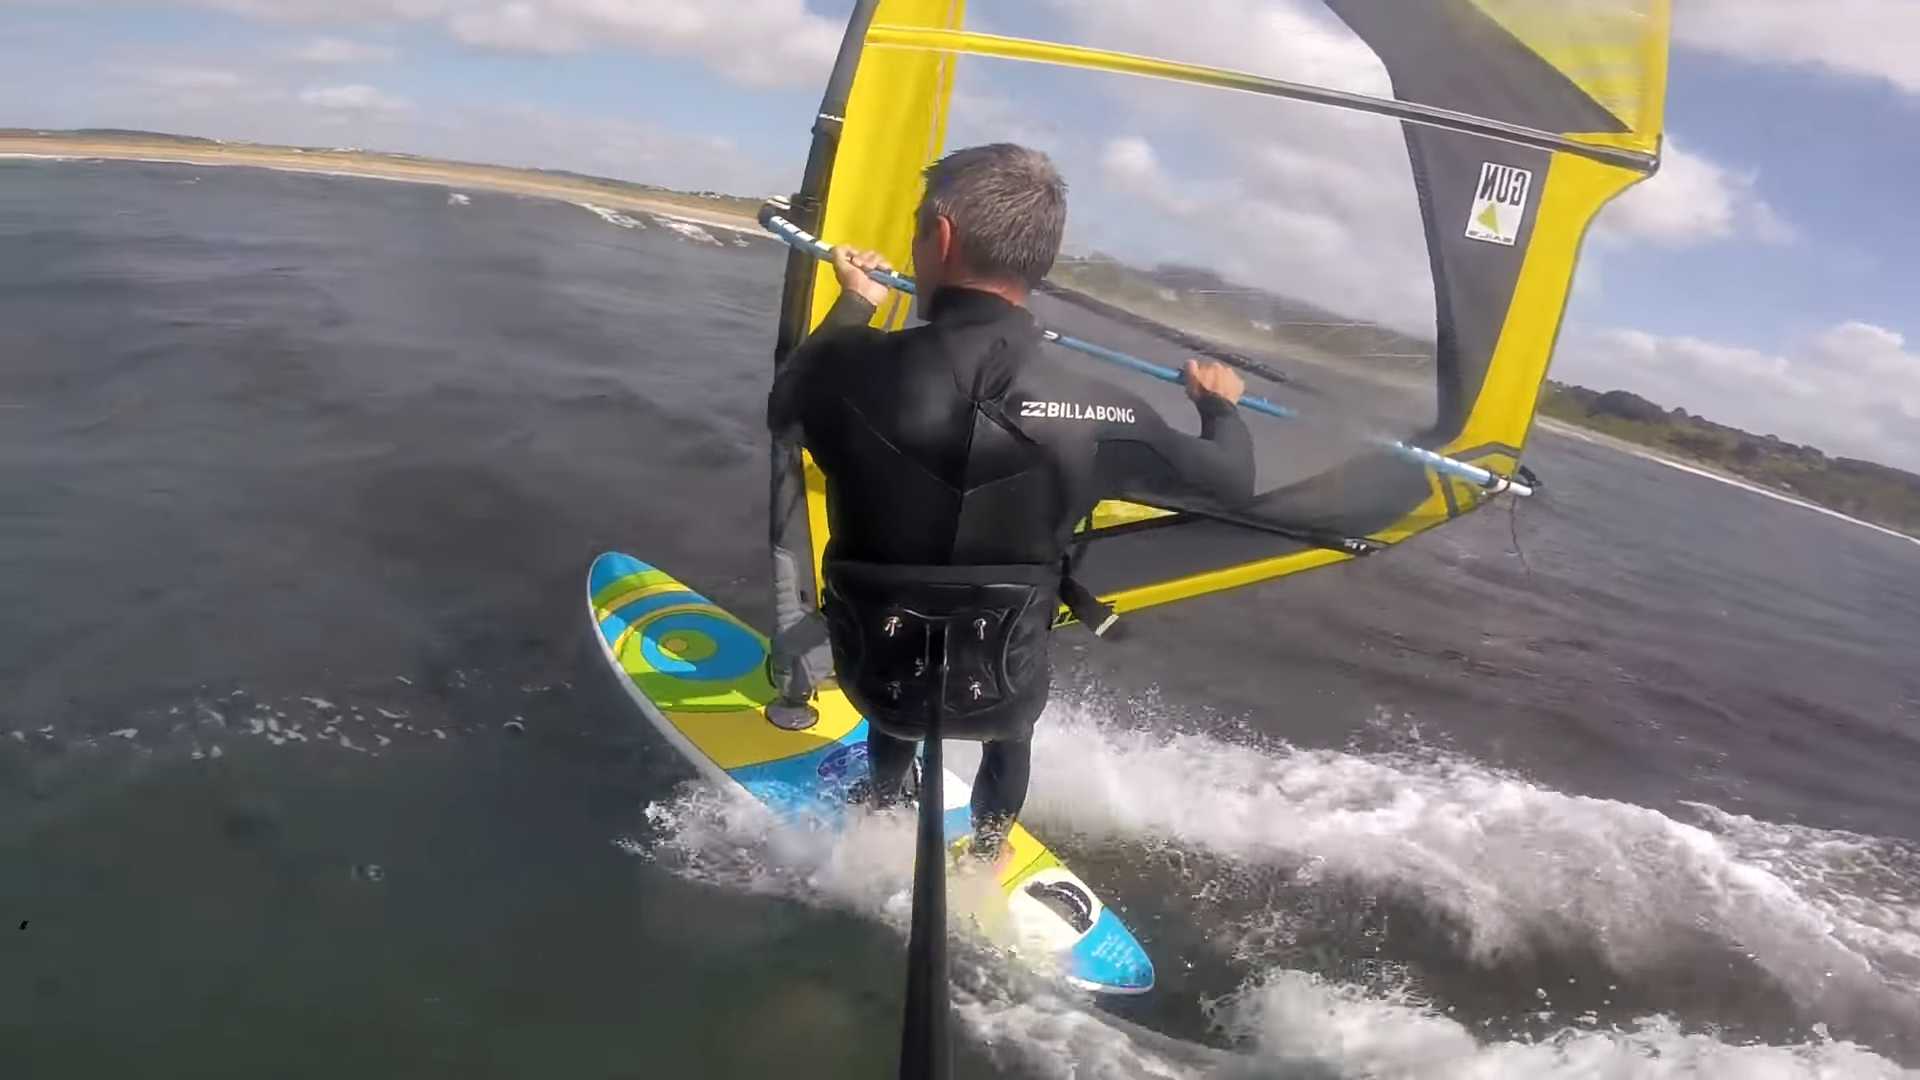 Screenshotter WindsurfKersiguenou2mai2018 2'42""